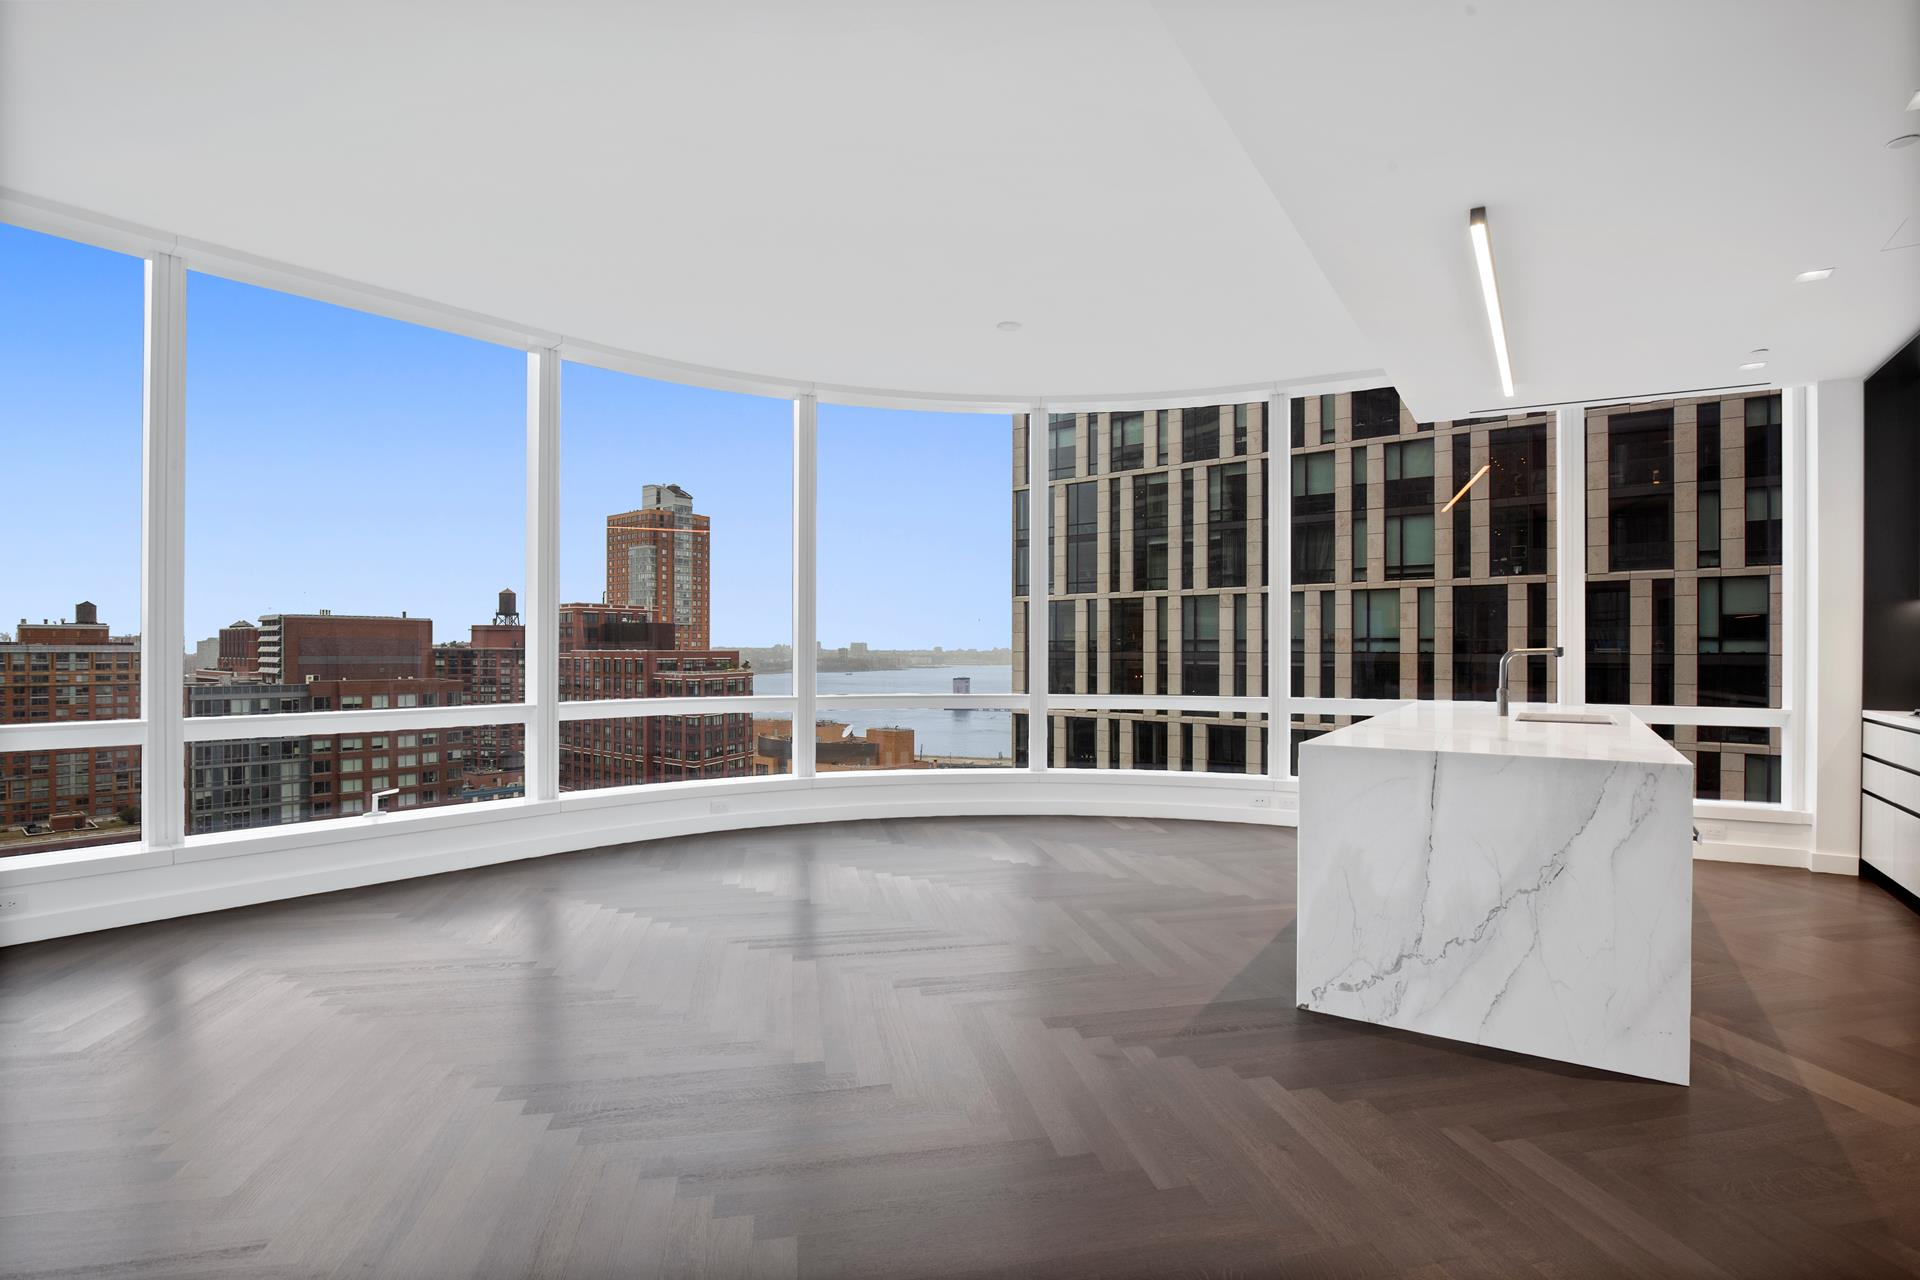 SHOWINGS ARE BY APPOINTMENT ONLY IN BUILDING. PLEASE KINDLY MAKE APPOINTMENT WELL IN ADVANCE TO MAKE SURE WE CAN ACCOMMODATE.PRICED TO SELL WELL BELOW MARKET! BUYER MUST CLOSE BY END OF YEAR. SPECTACULAR DOUBLE CORNER TRUE 4 BEDROOMS 4.5 BATHS HOME WITH   NORTH, WEST AND SOUTH HUDSON RIVER VIEWS AT 111 MURRAY STREET, TRIBECA'S NEWEST LUXURY BUILDING WITH FIRST EVER HAMMAN, TWO POOLS, PRIVATE DINING AND MORE. BE THE FIRST TO LIVE IN THIS MASTERFUL HOME AND ENJOY STUNNING SUNSET VIEWS EVERYDAY.Step off the elevator   onto your own private vestibule and enter your new home. This exceptional four bedroom residence, with curved high floor-to-ceiling crystalline glass, boasts beautiful light from three premium exposures and uncompromising Hudson River and Verrazono Bridge   views. The entry galley leads to the great room with a spectacular open custom kitchen adorned with white Calacatta Borghin marble countertops book-matched waterfall, cerused White Oak cabinetry trimmed in custom soft black metal, Dornbracht fixtures in a   custom soft black matte finish, pantry, and top-of-the-line appliances by Wolf, Miele, and Sub-Zero including 5-burner gas cooktop with built-in fully vented hood, dishwasher, wall oven, speed oven, and wine refrigerator. The corner grand master bedroom suite   faces south west and offers a large walk-in closet and luxurious master bathroom suite with radiant heat floors, travertine stone slab feature walls, double vanities with custom white marble and a a freestanding BluStone soaking tub positioned to enjoy open   south-facing views through a full-height window. The three additional bedrooms also have their own en suite baths. An extra powder room, utility closet and wash room with vented dryer complete this stunning private residence. This home has been upgraded with   custom closets and shades throughout.Developed by a partnership of Fisher Brothers, Witkoff, and New Valley, 111 Murray Street soars some 800 feet, offering 157 residences. A colla